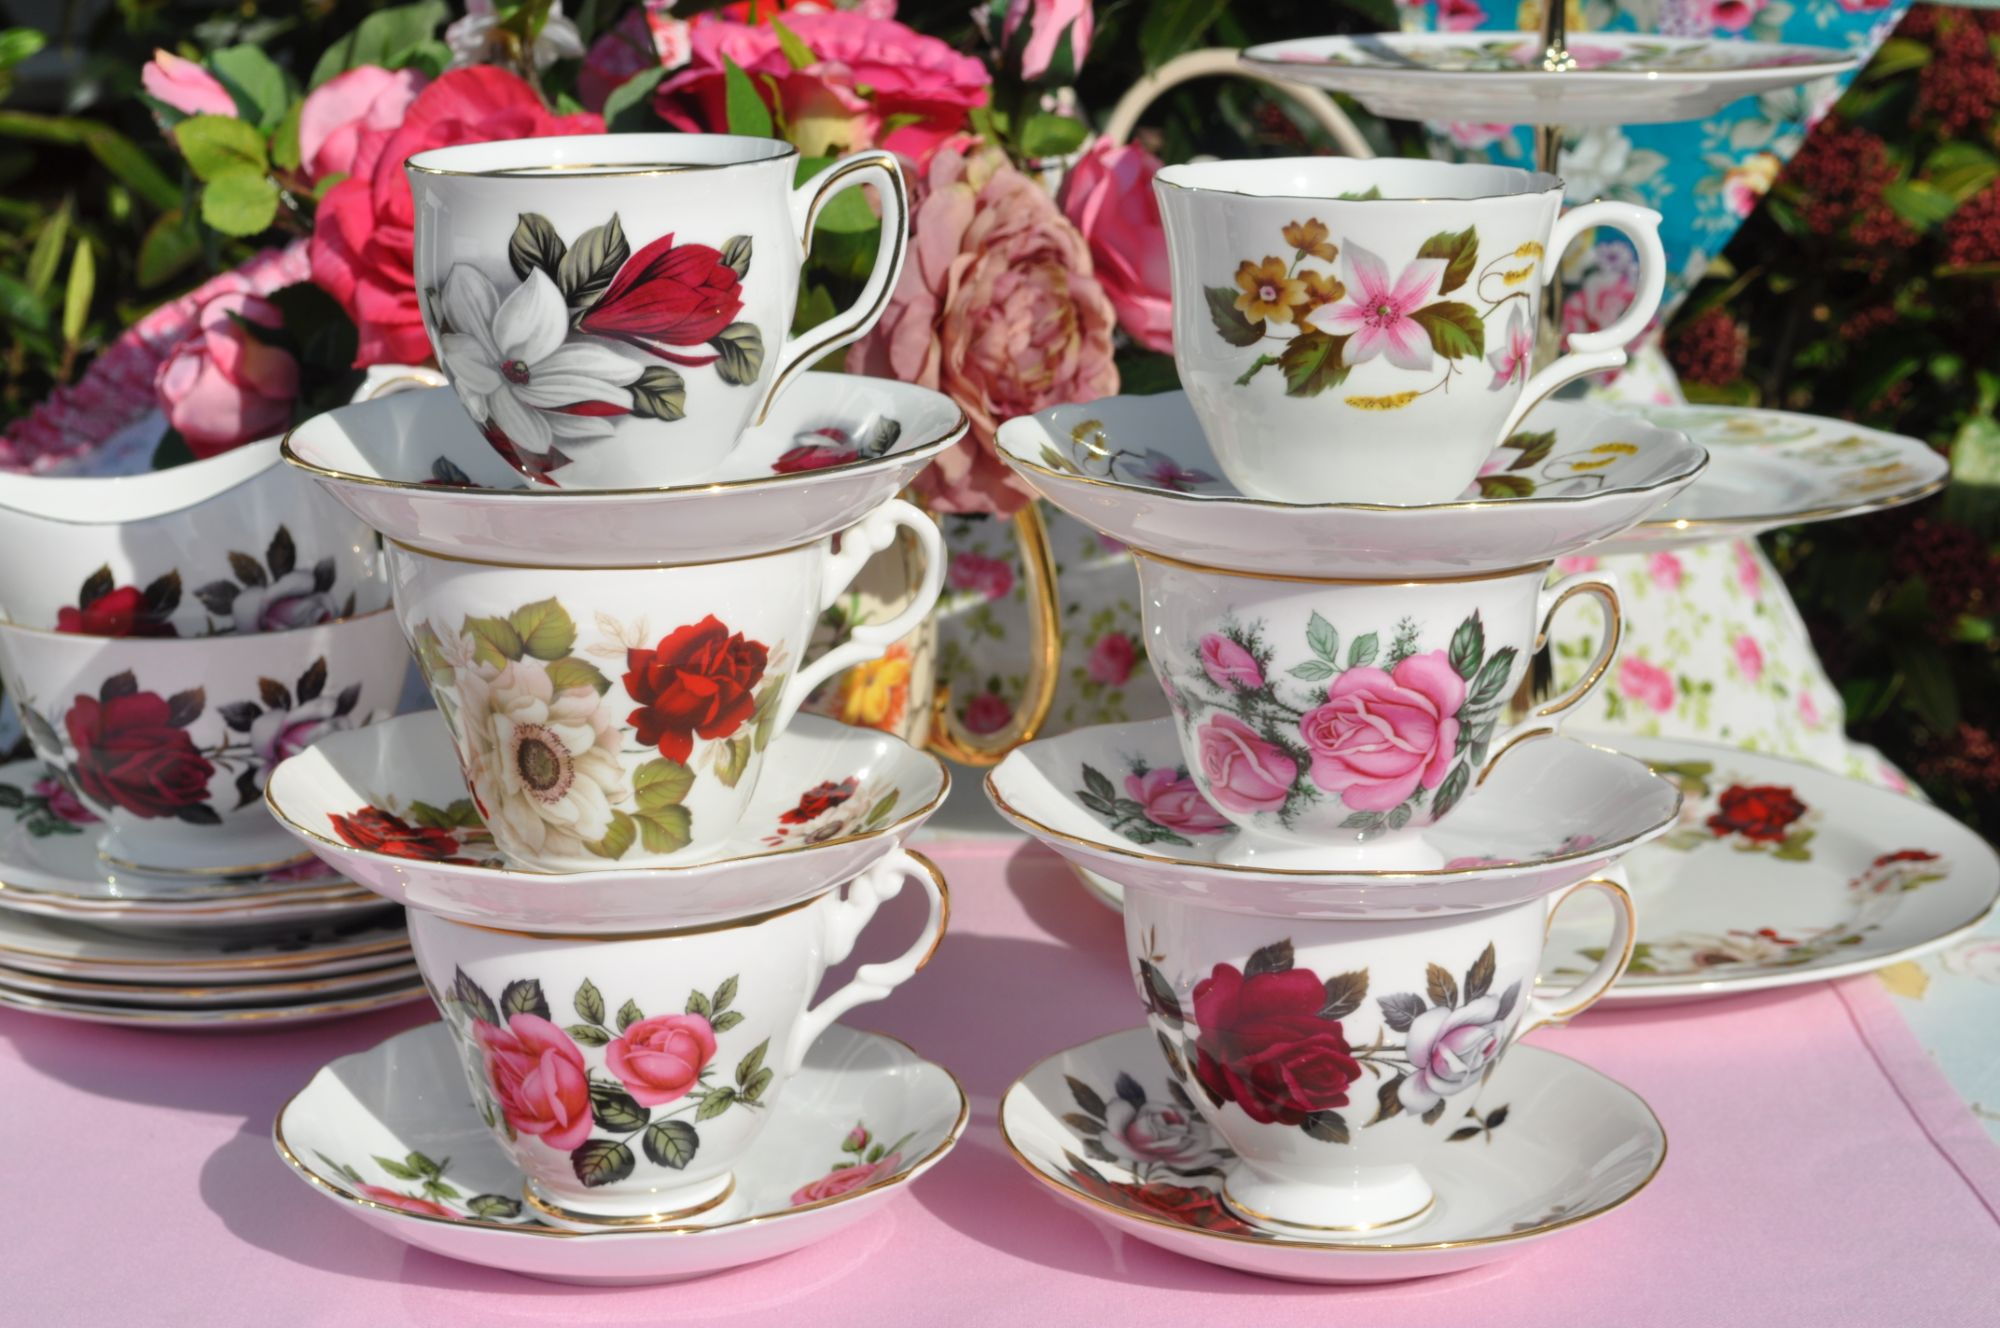 pretty mismatched teacups